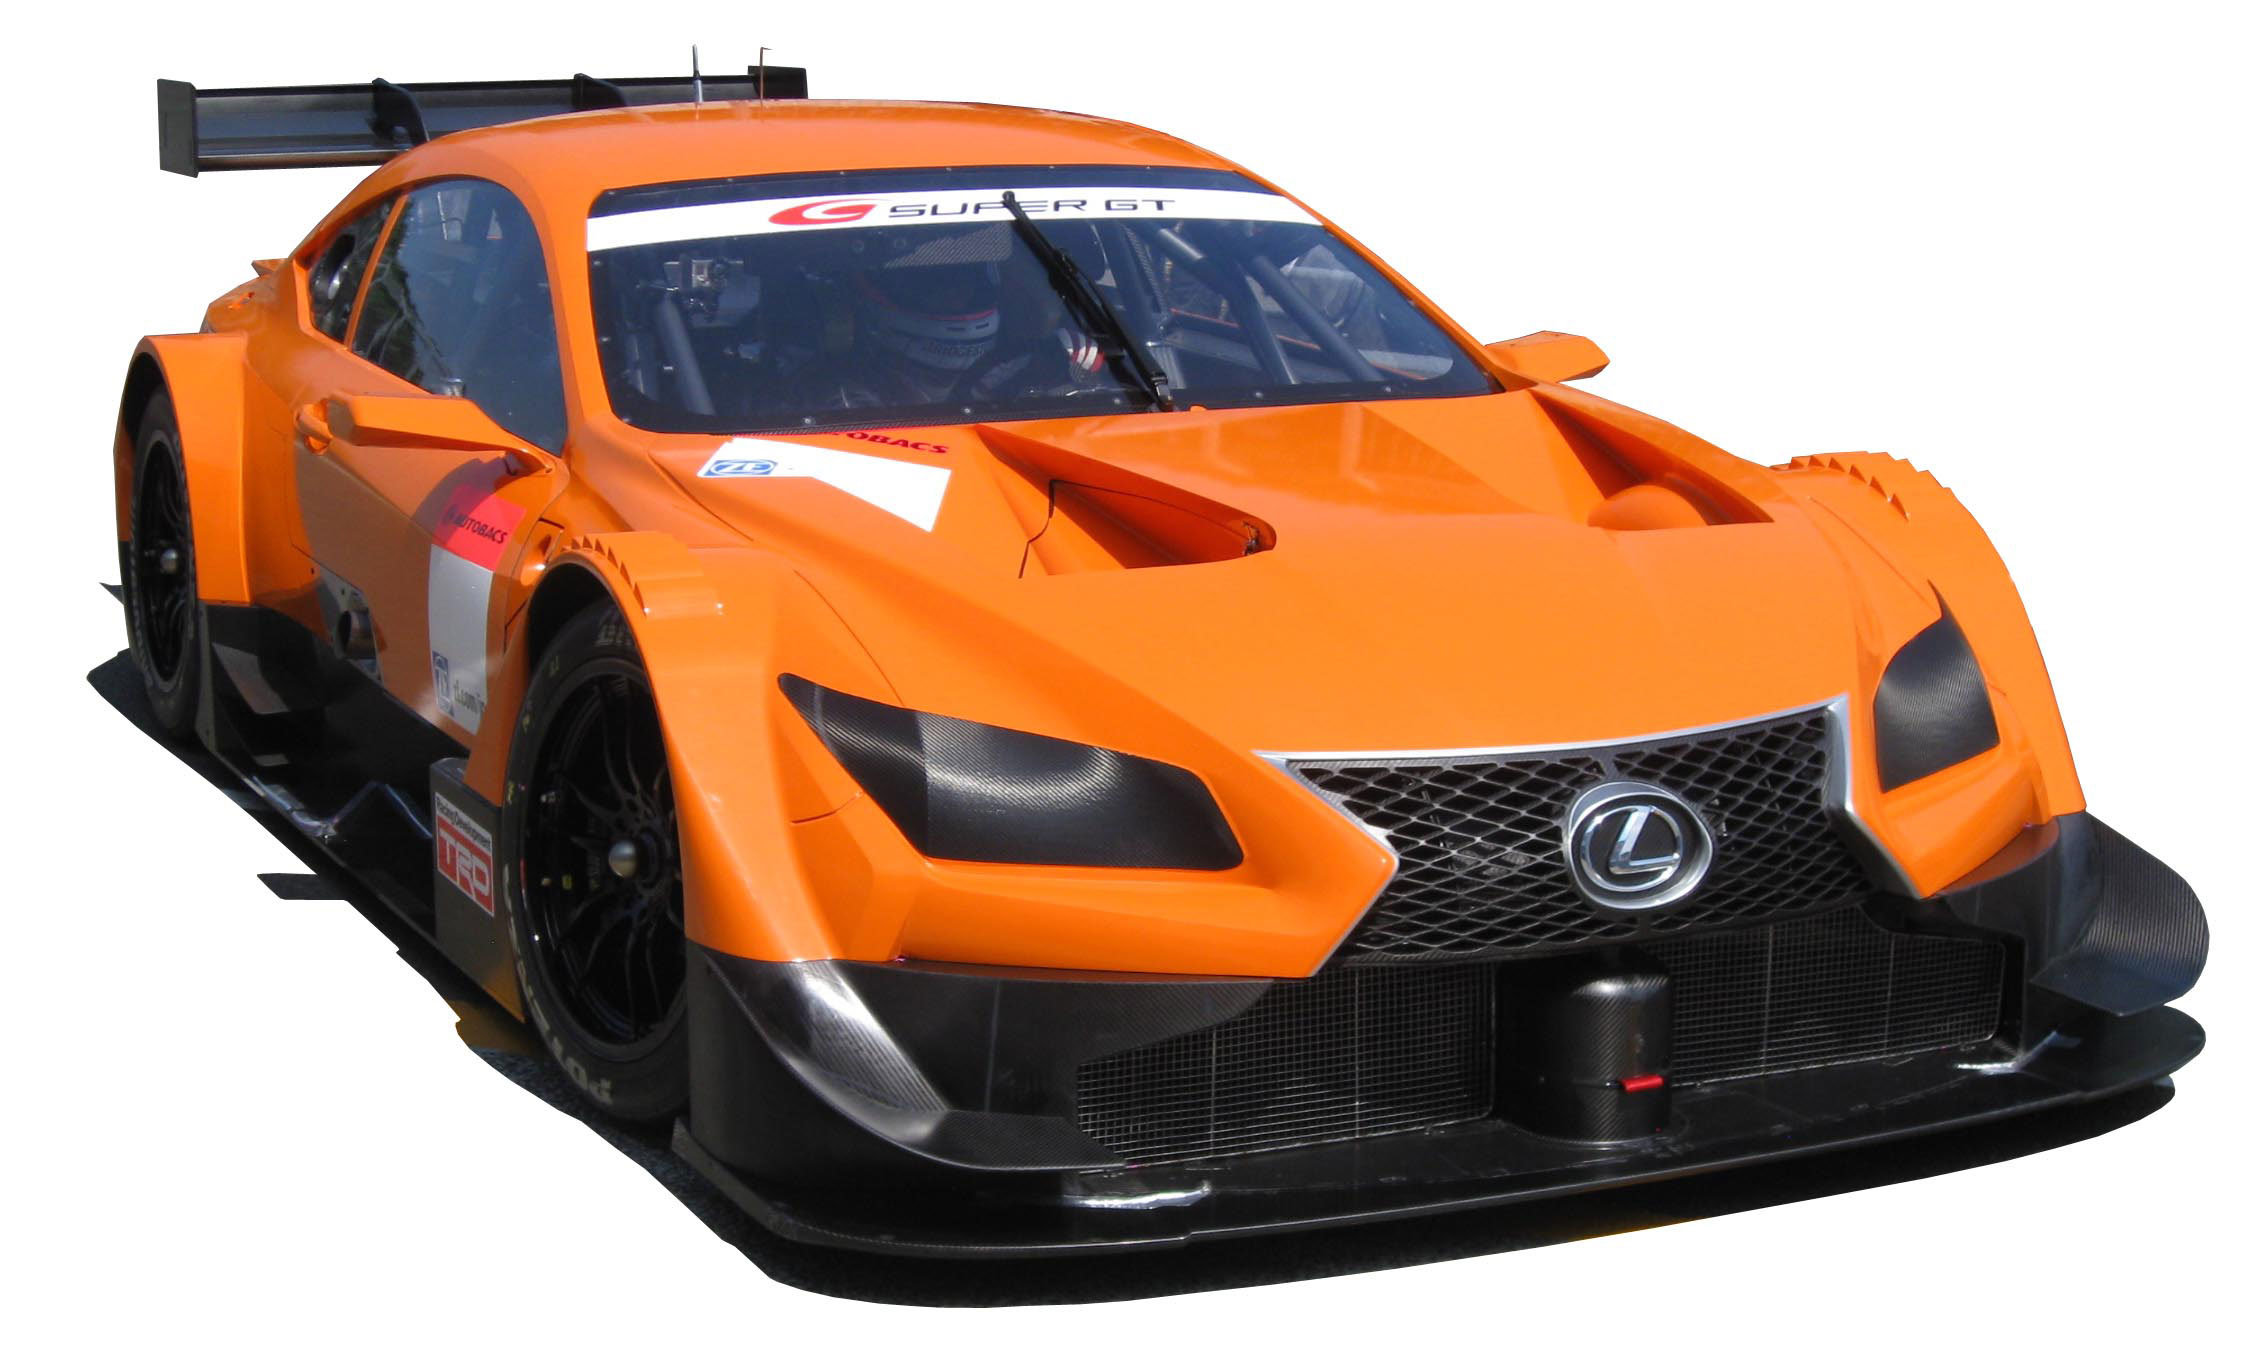 Stevens Creek Lexus Used Cars >> New Race Car to Compete in Japanese Super GT Series - Journal - Lexus of Stevens Creek Blog ...